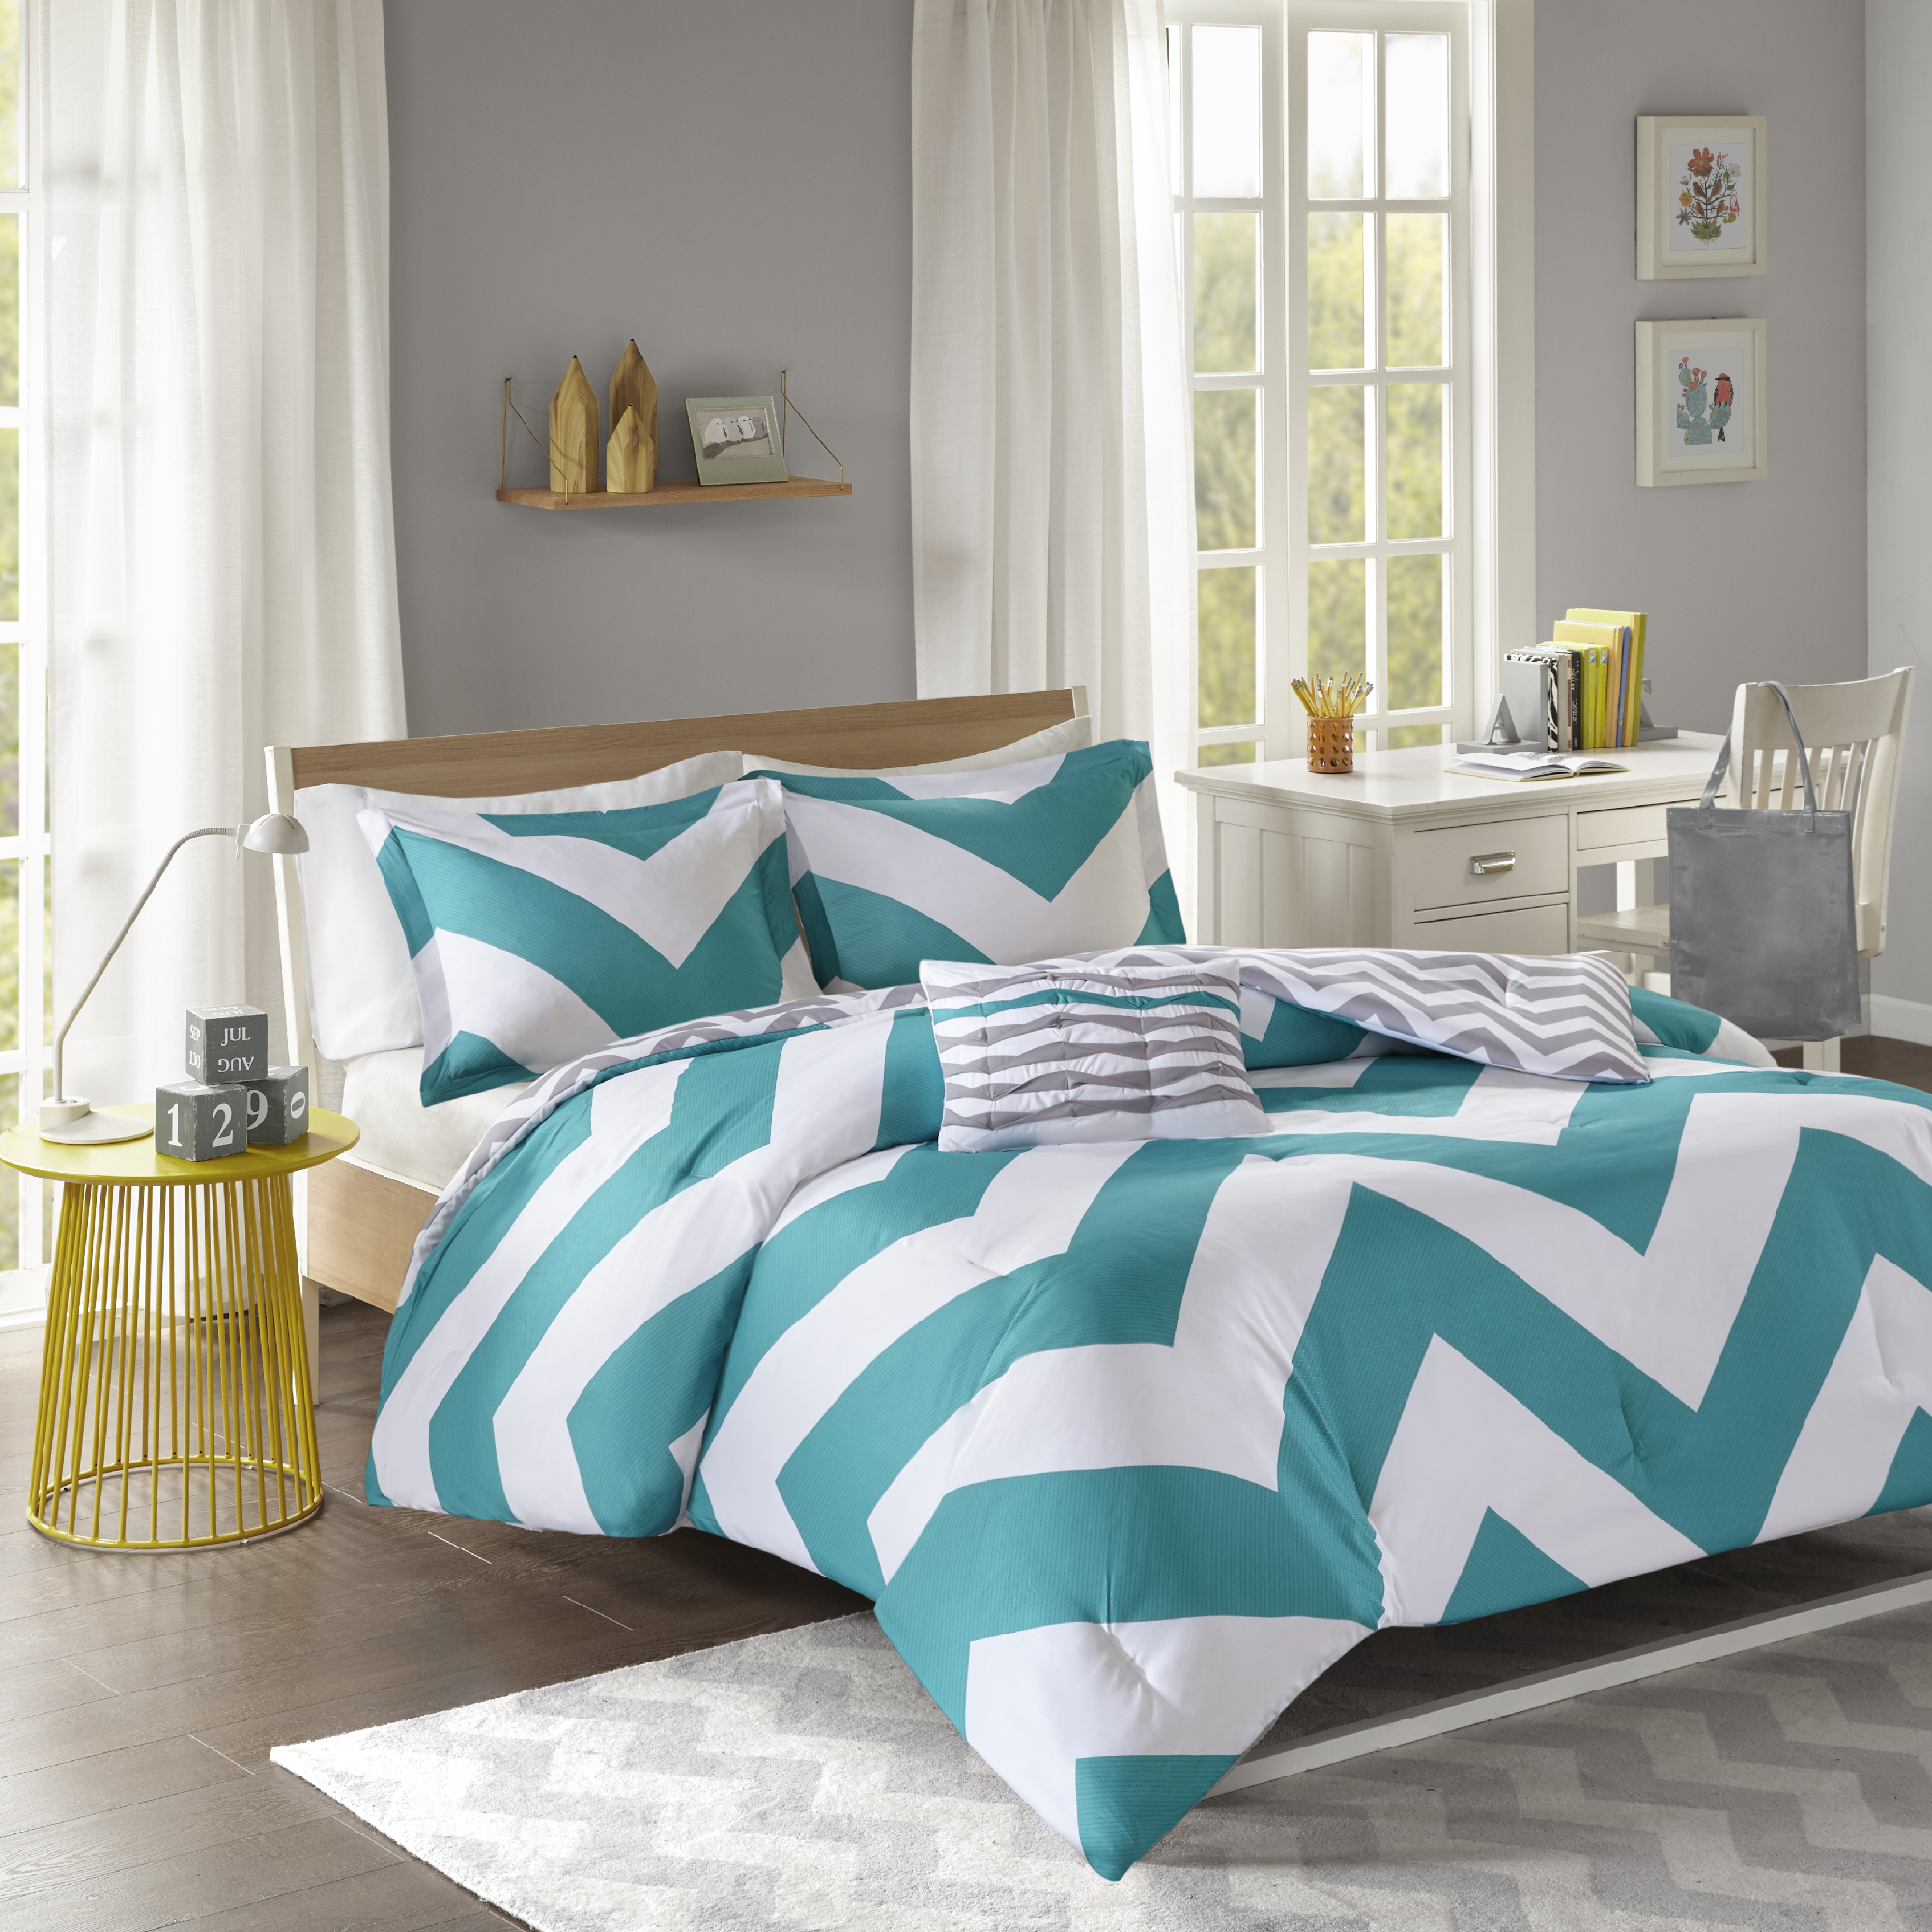 Home Essence Teen Leo Ultra Soft Reversible Bedding Comforter Set